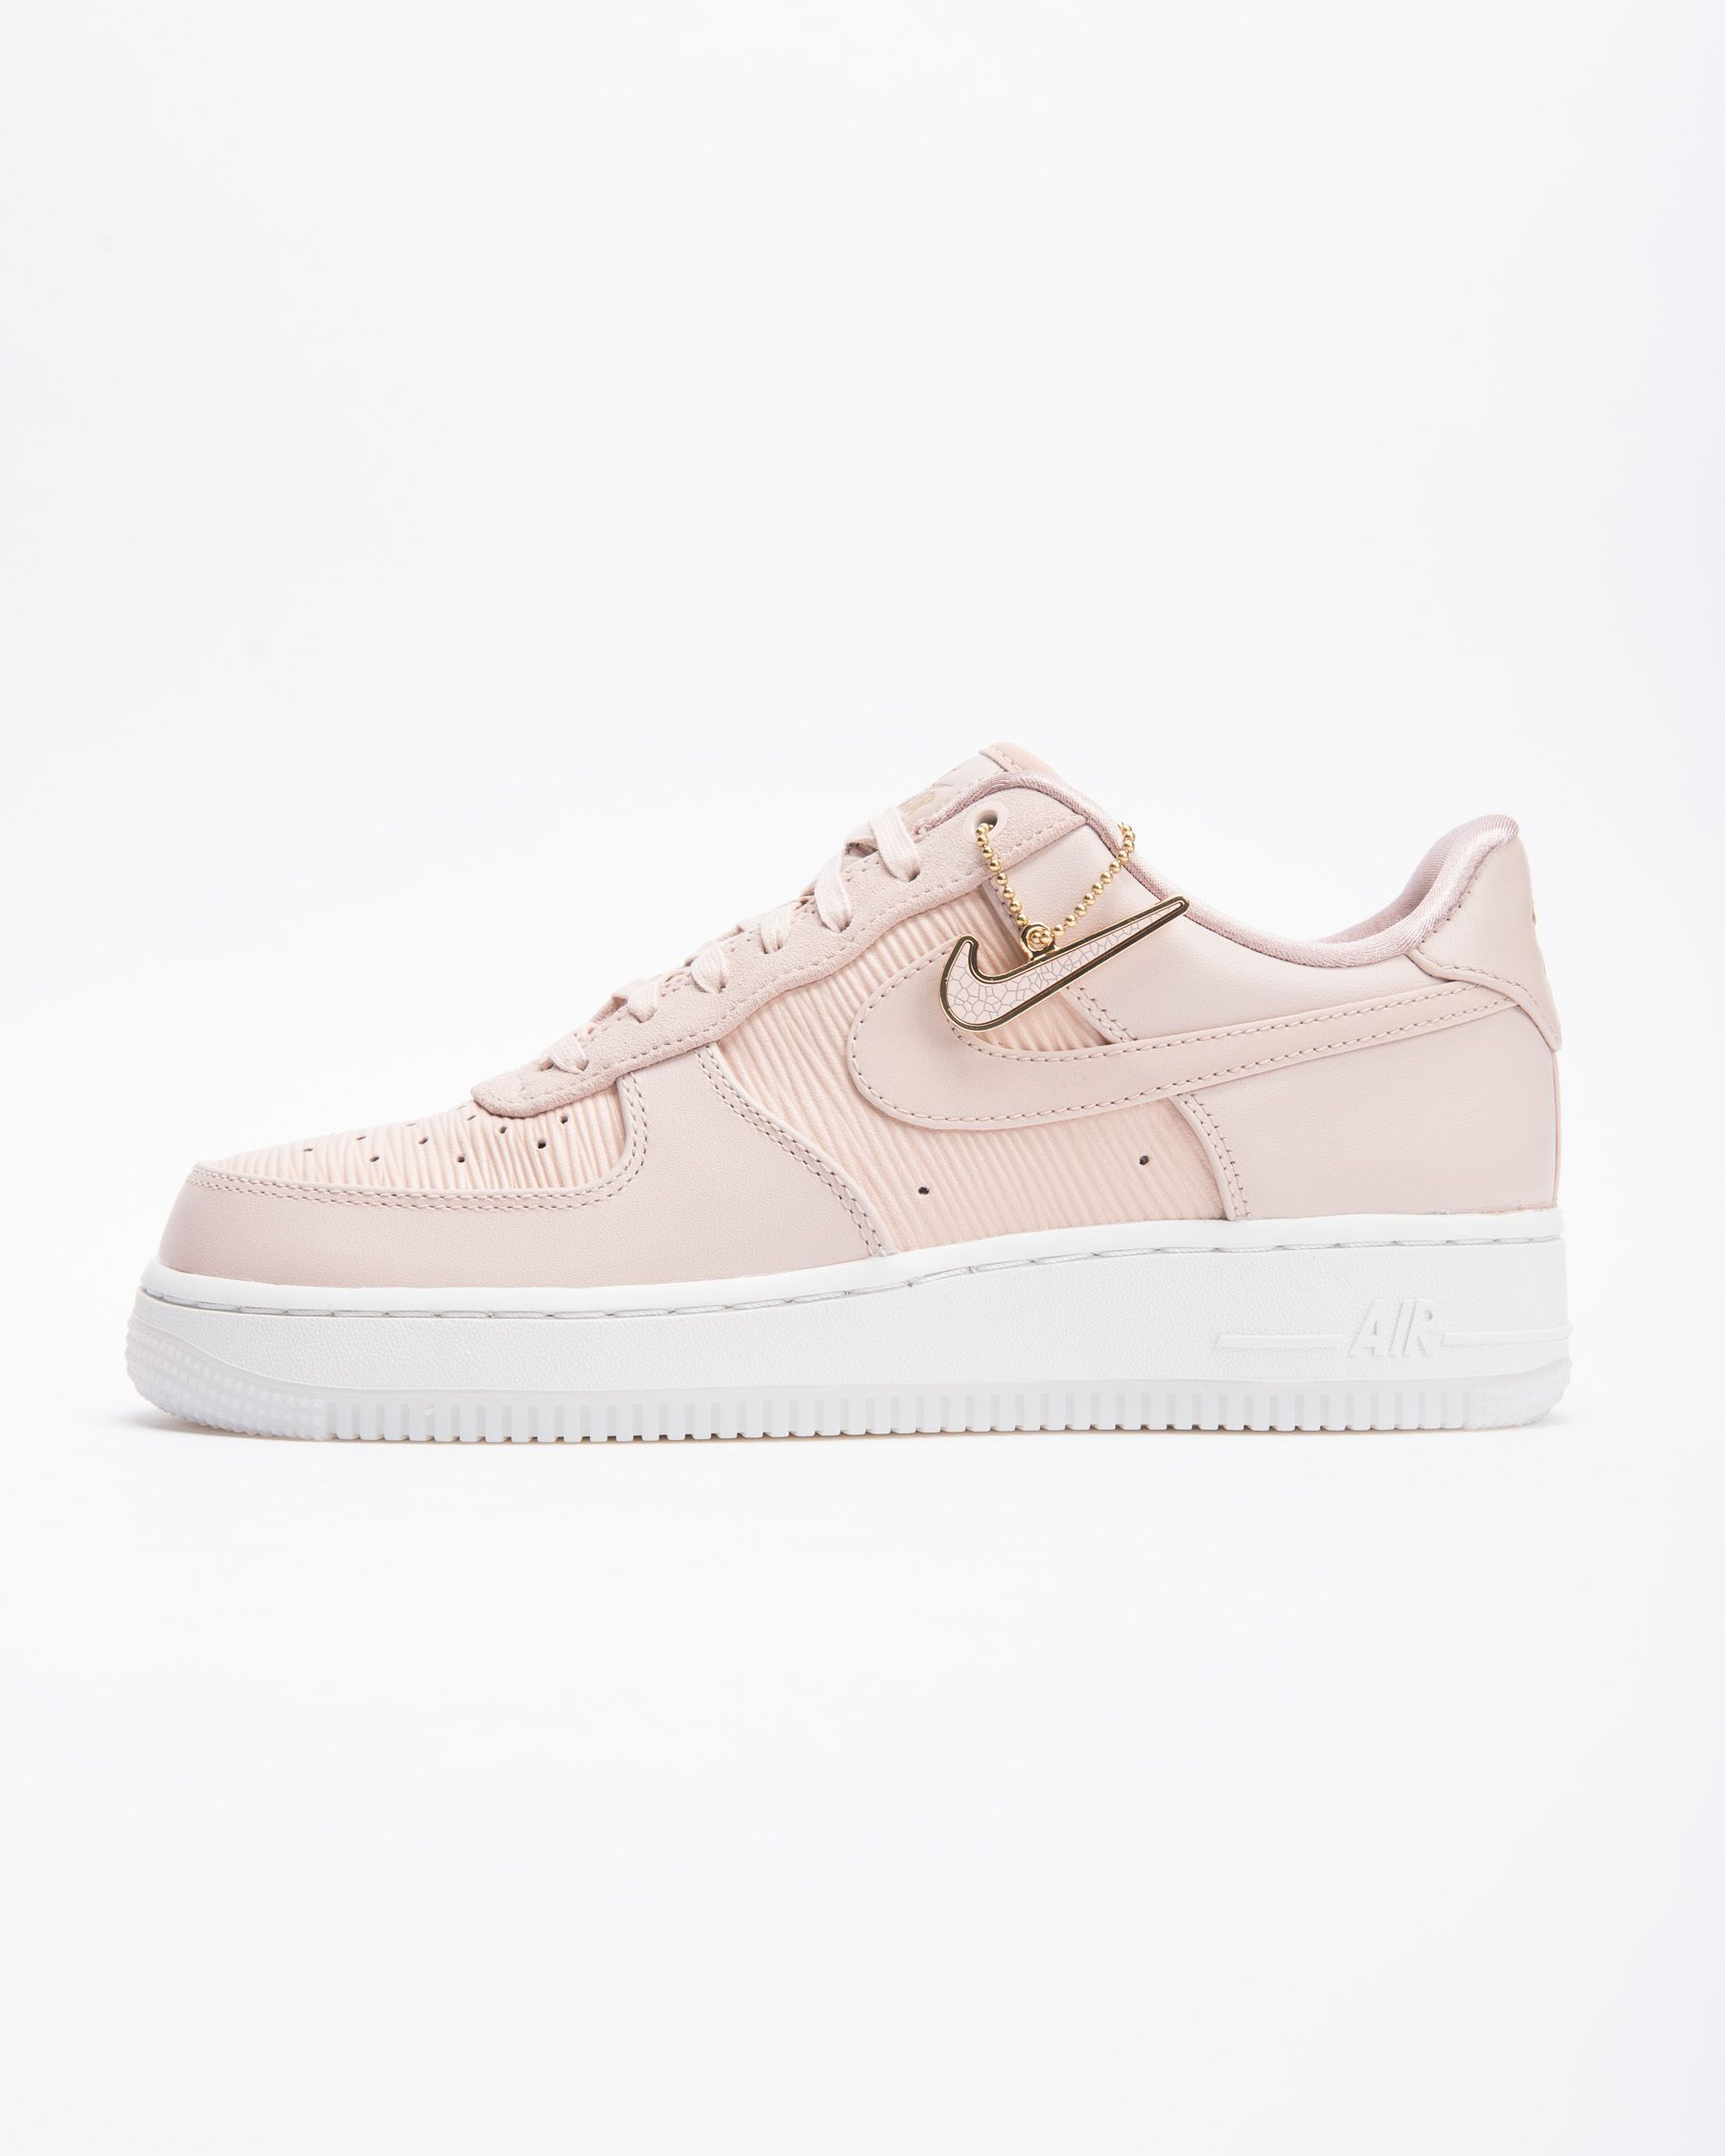 Sneaker | Damen Nike Wmns Air Force 1 Hi Prm Beige